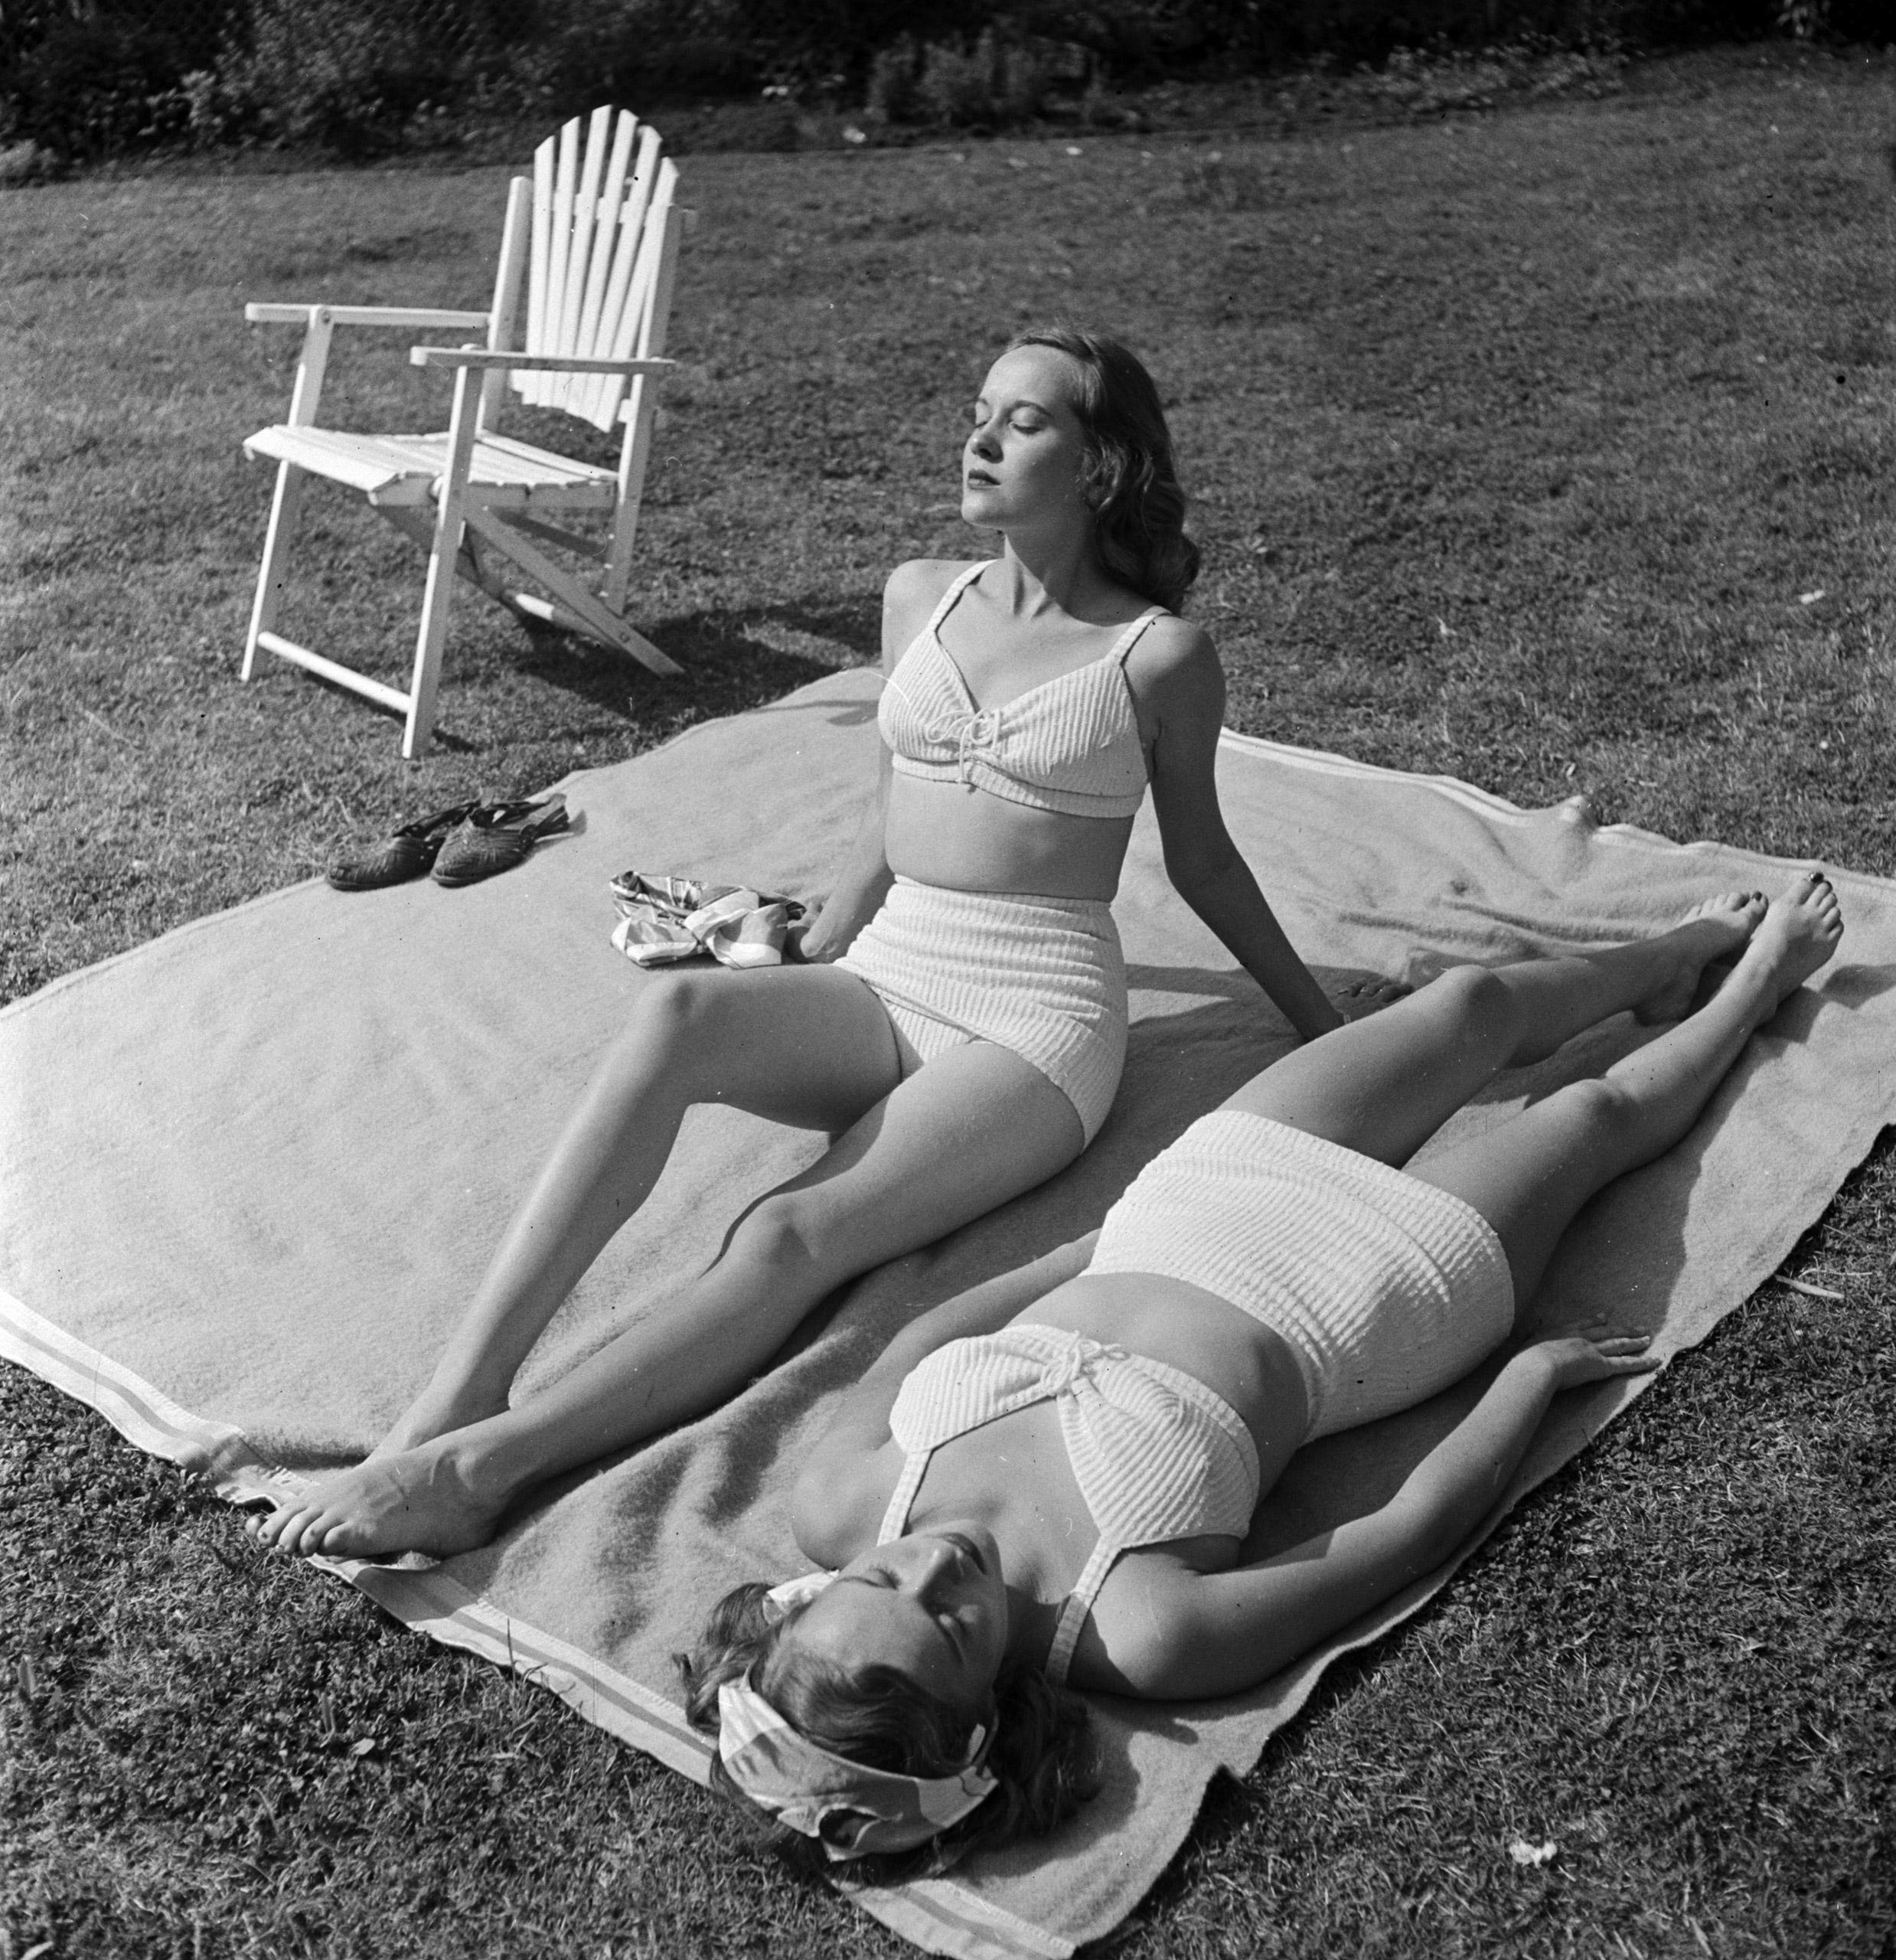 Barbara and Betty Bounds sunbathe side by side.